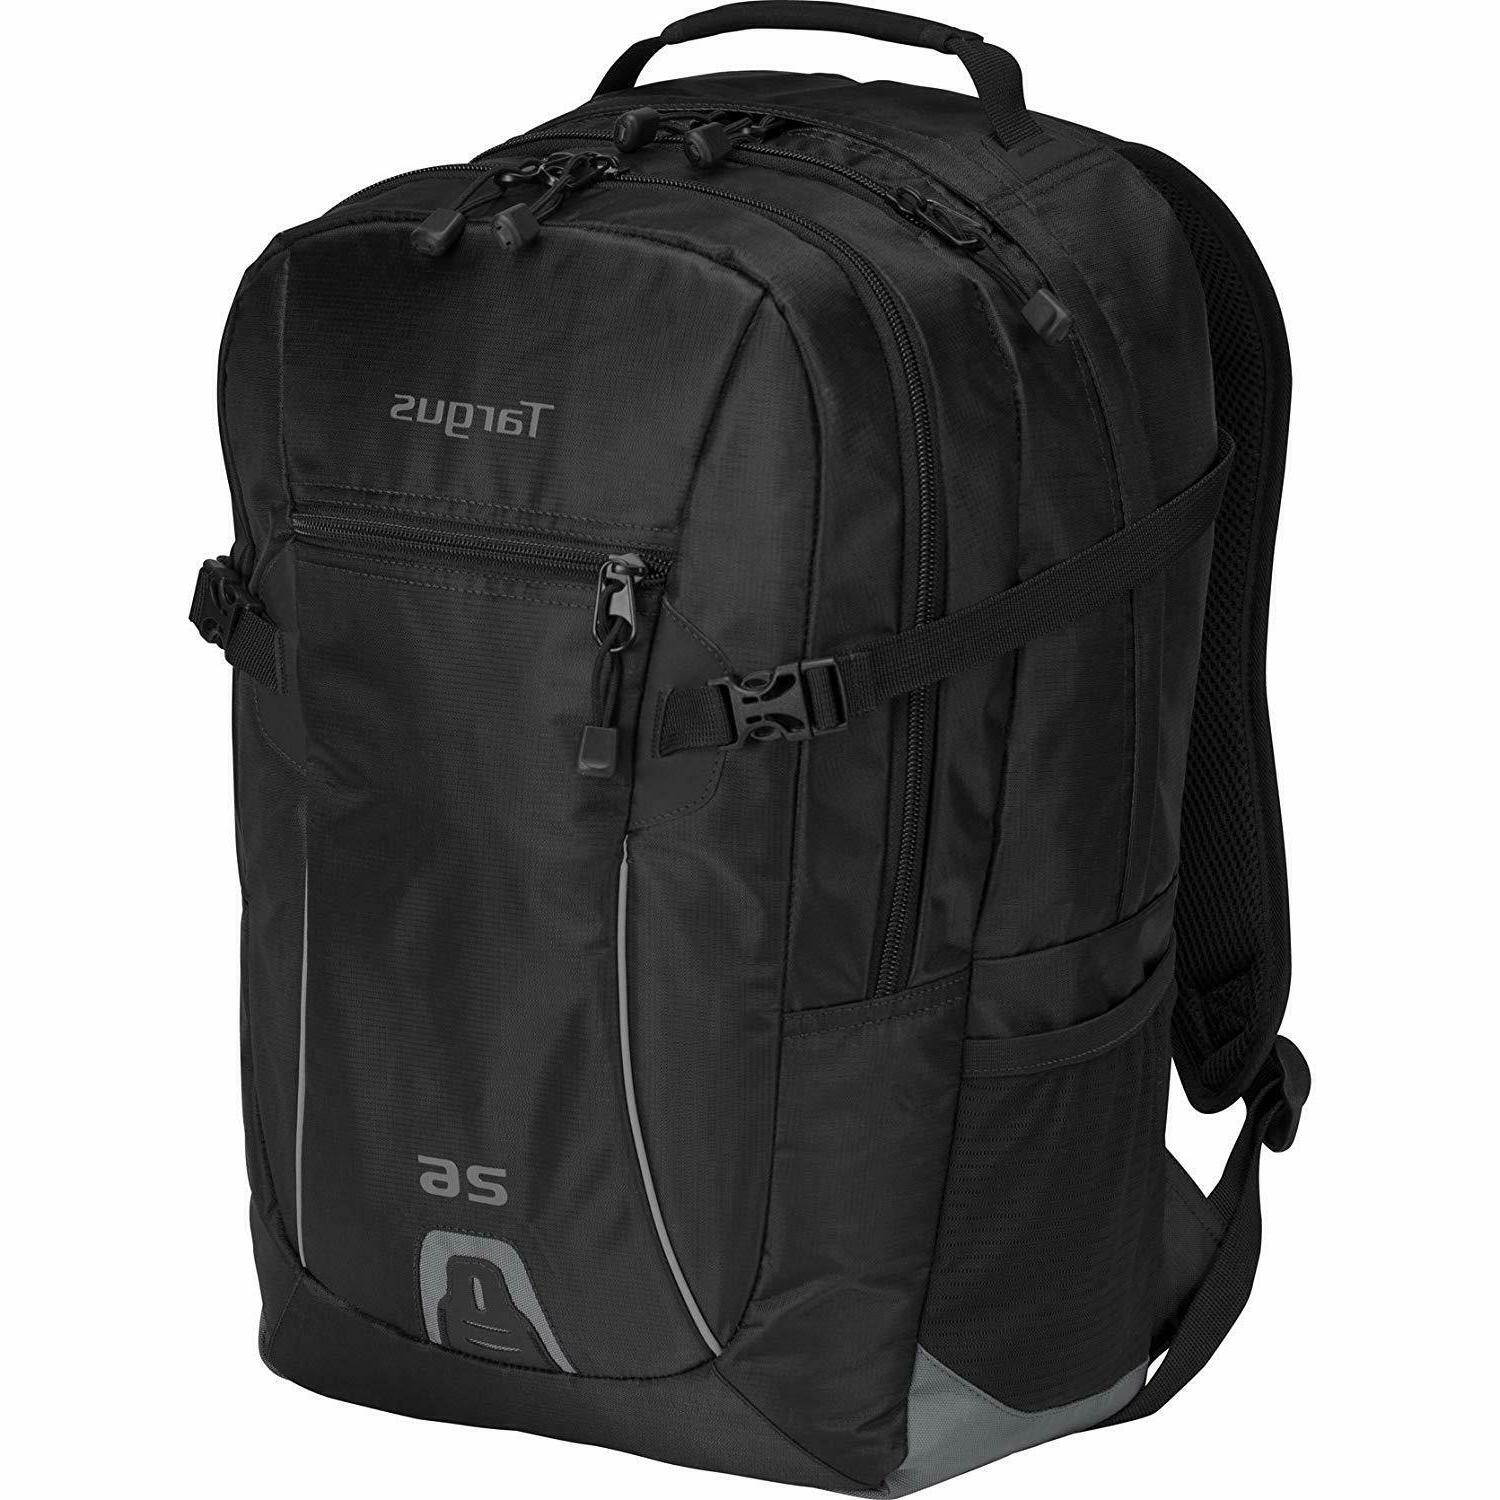 sport 26l backpack for 16 inch laptops